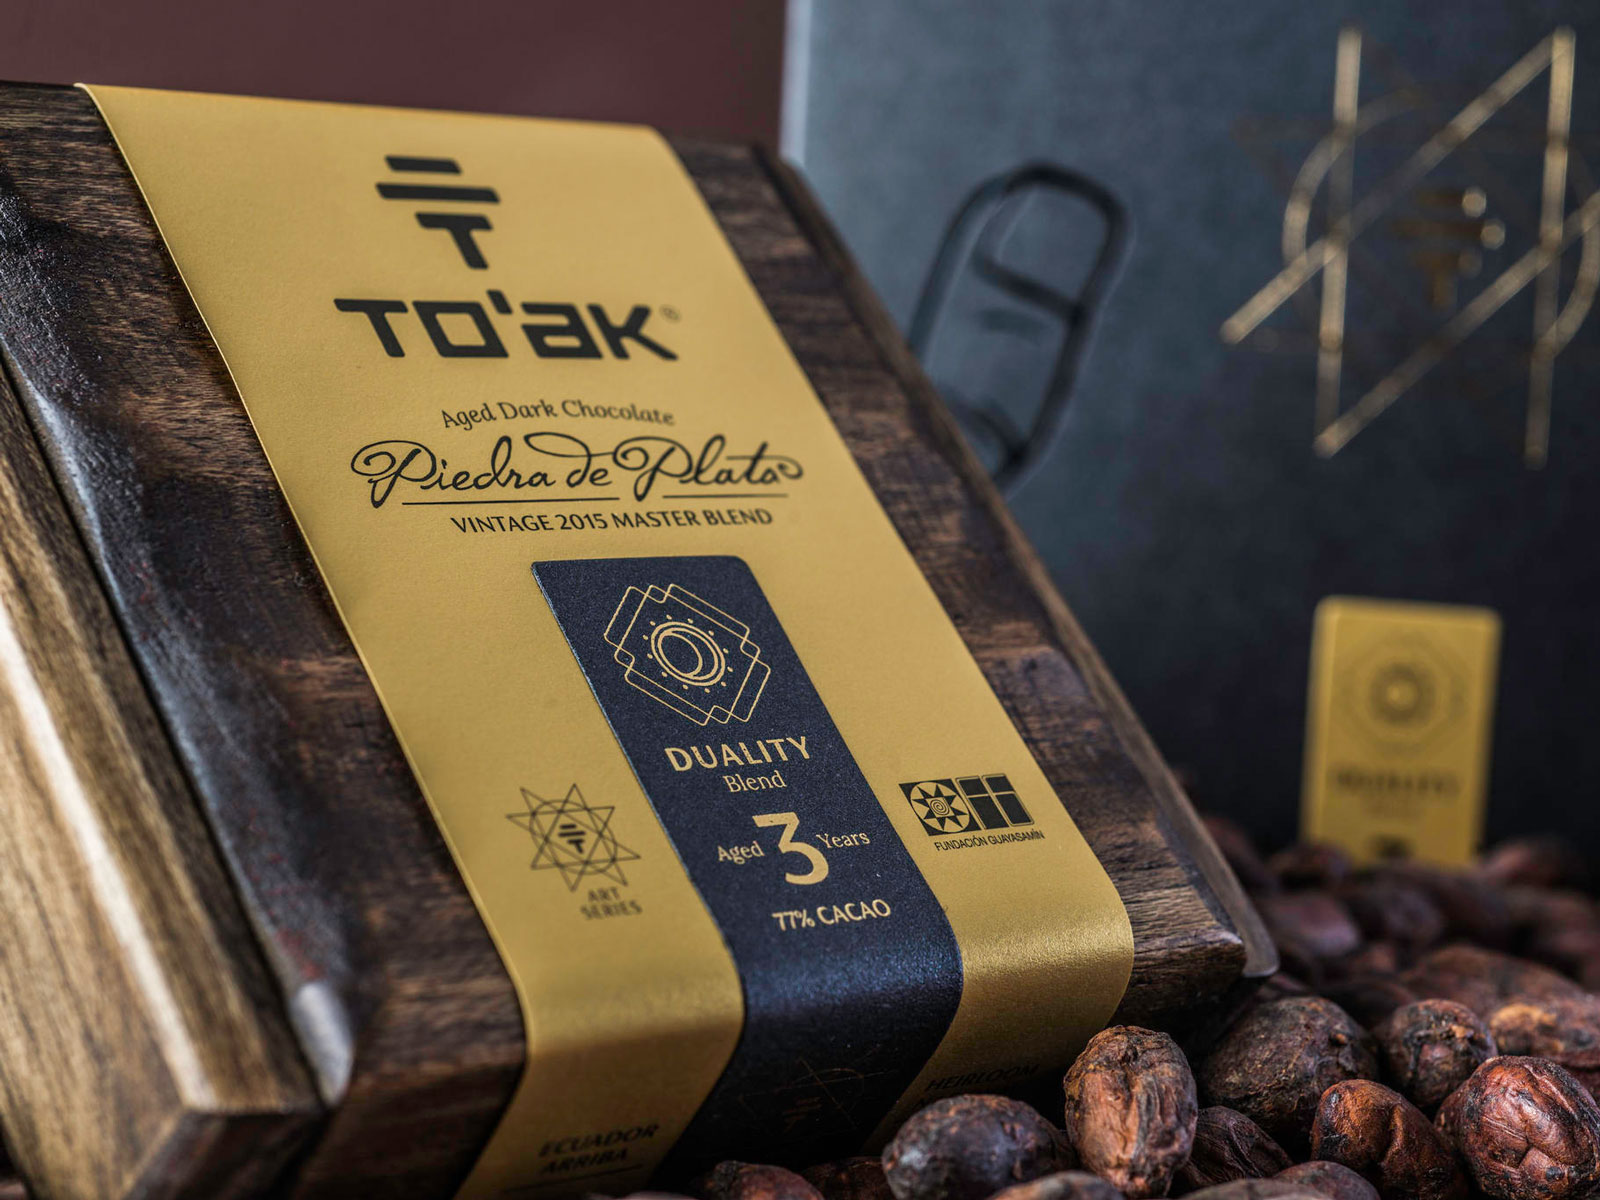 This Chocolate Bar Costs Over $600